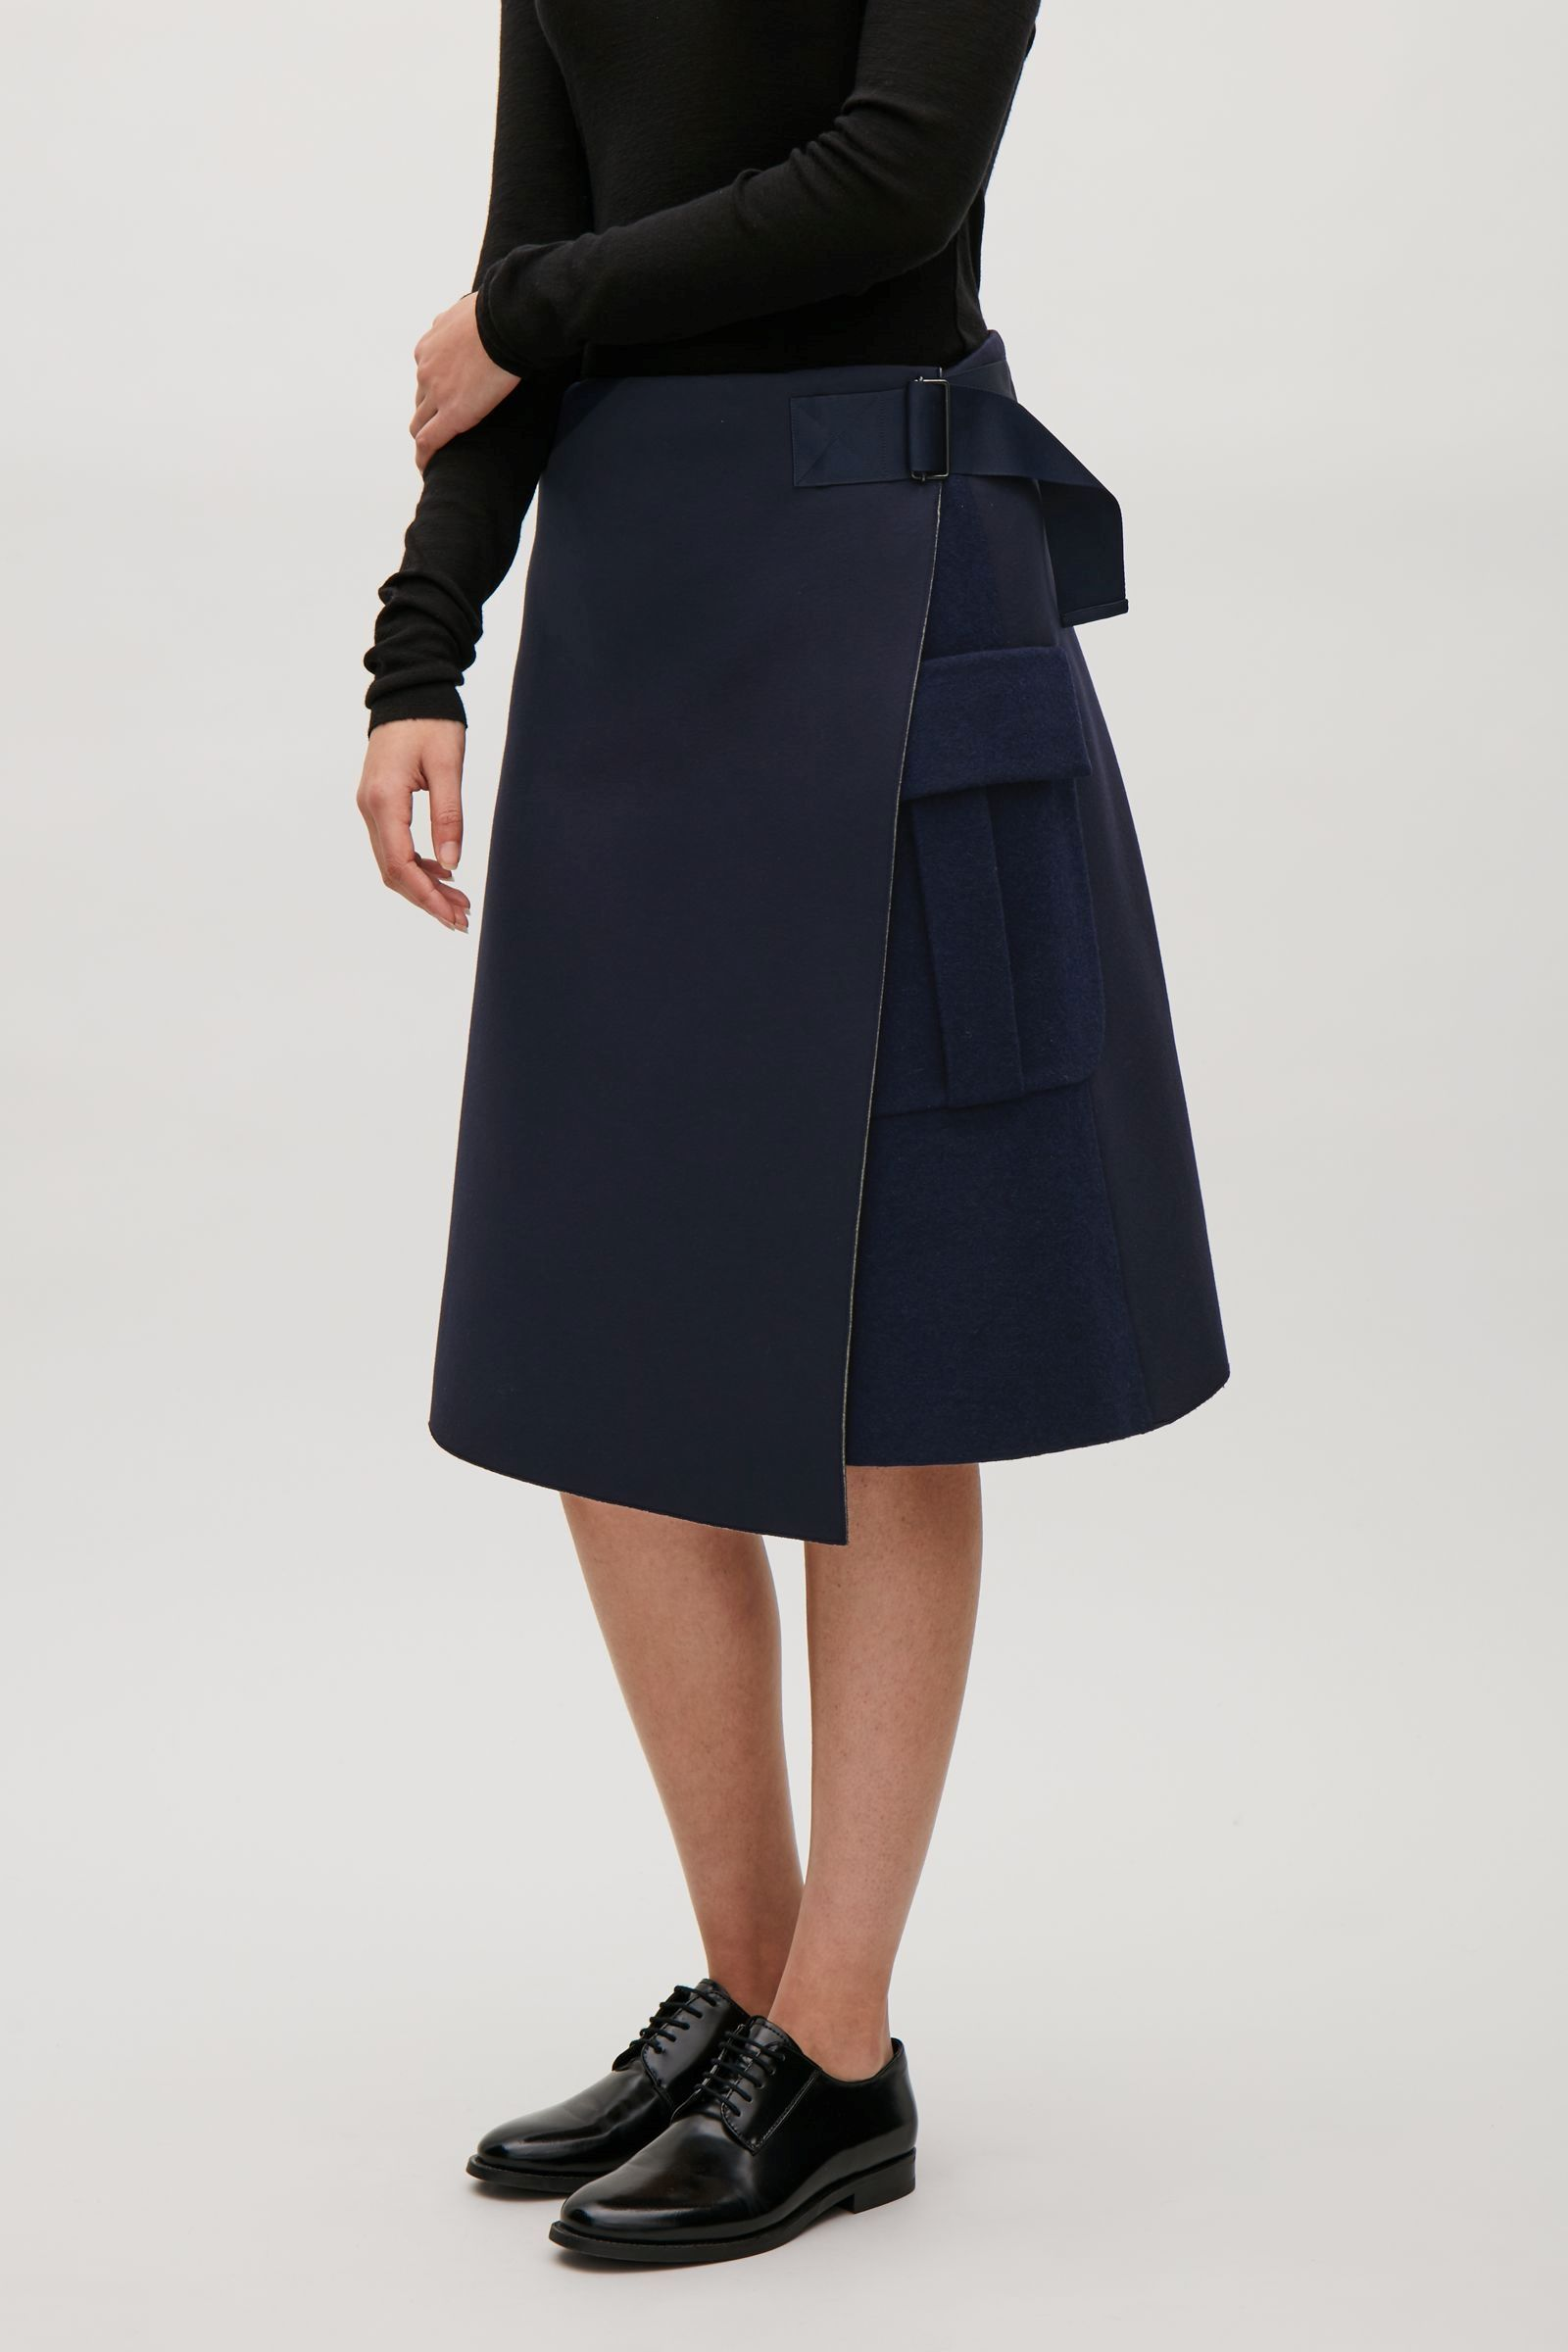 cabba0a741d3e5 COS image 3 of Wrap-over strap skirt in Navy | gifts | Skirts, High ...